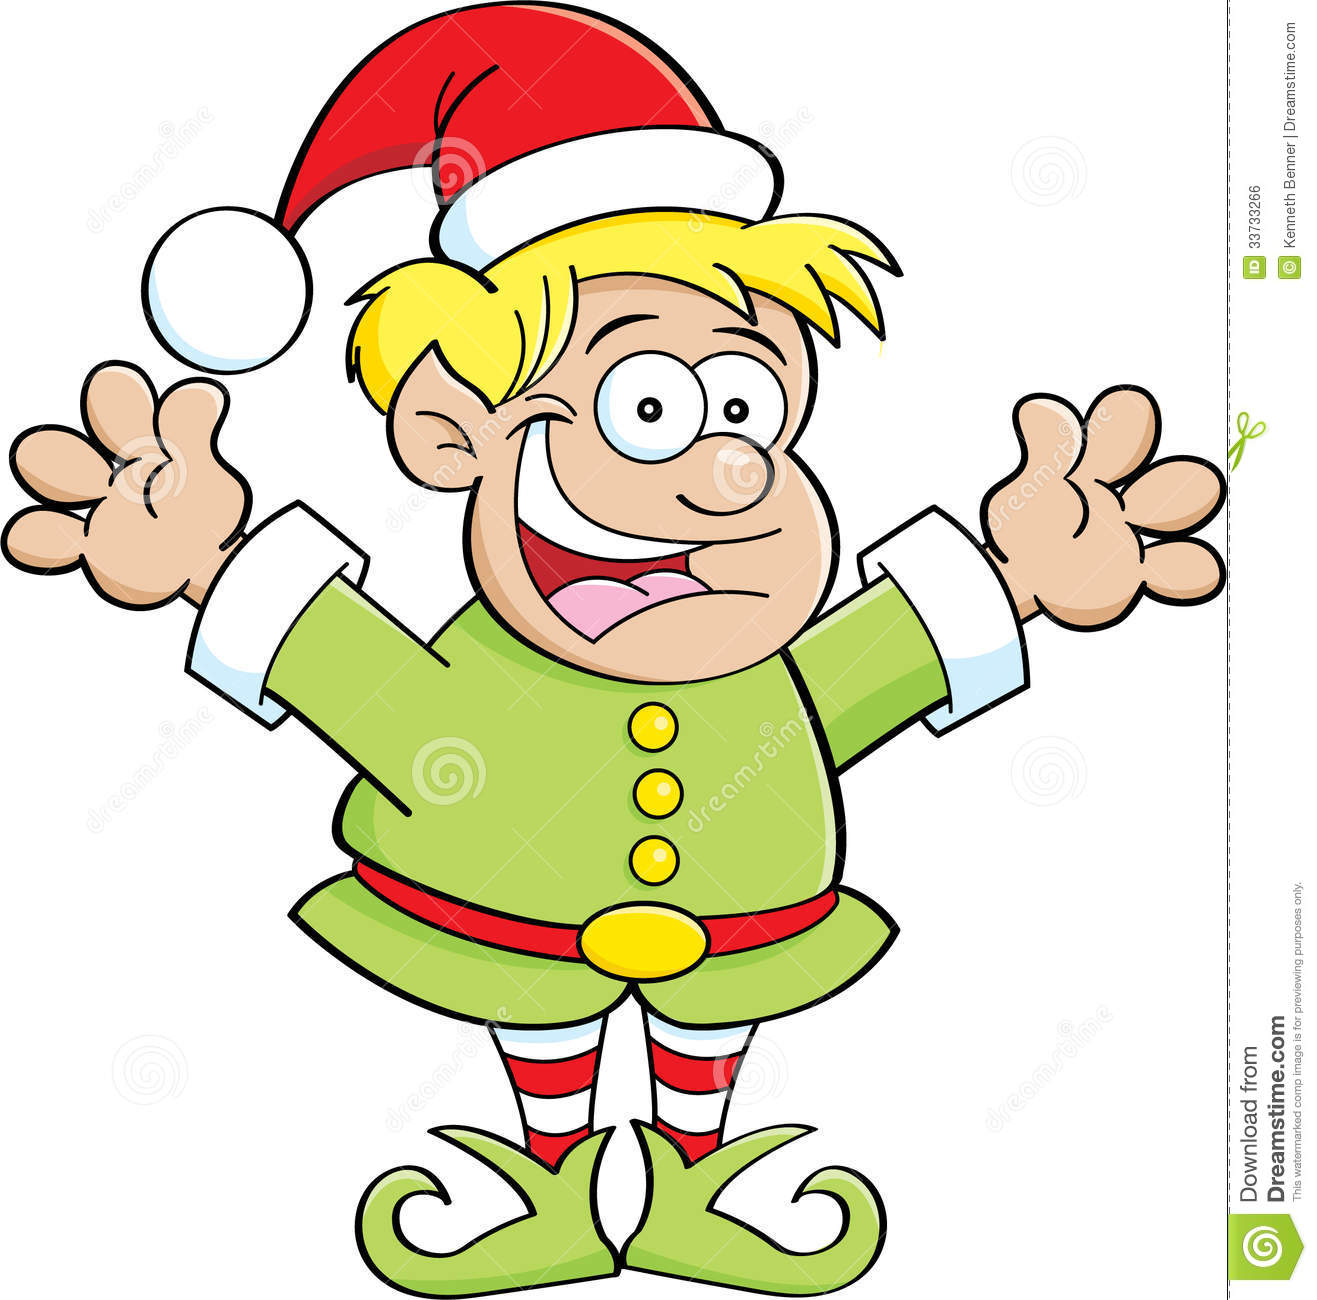 1317x1300 Elf Clipart, Suggestions For Elf Clipart, Download Elf Clipart